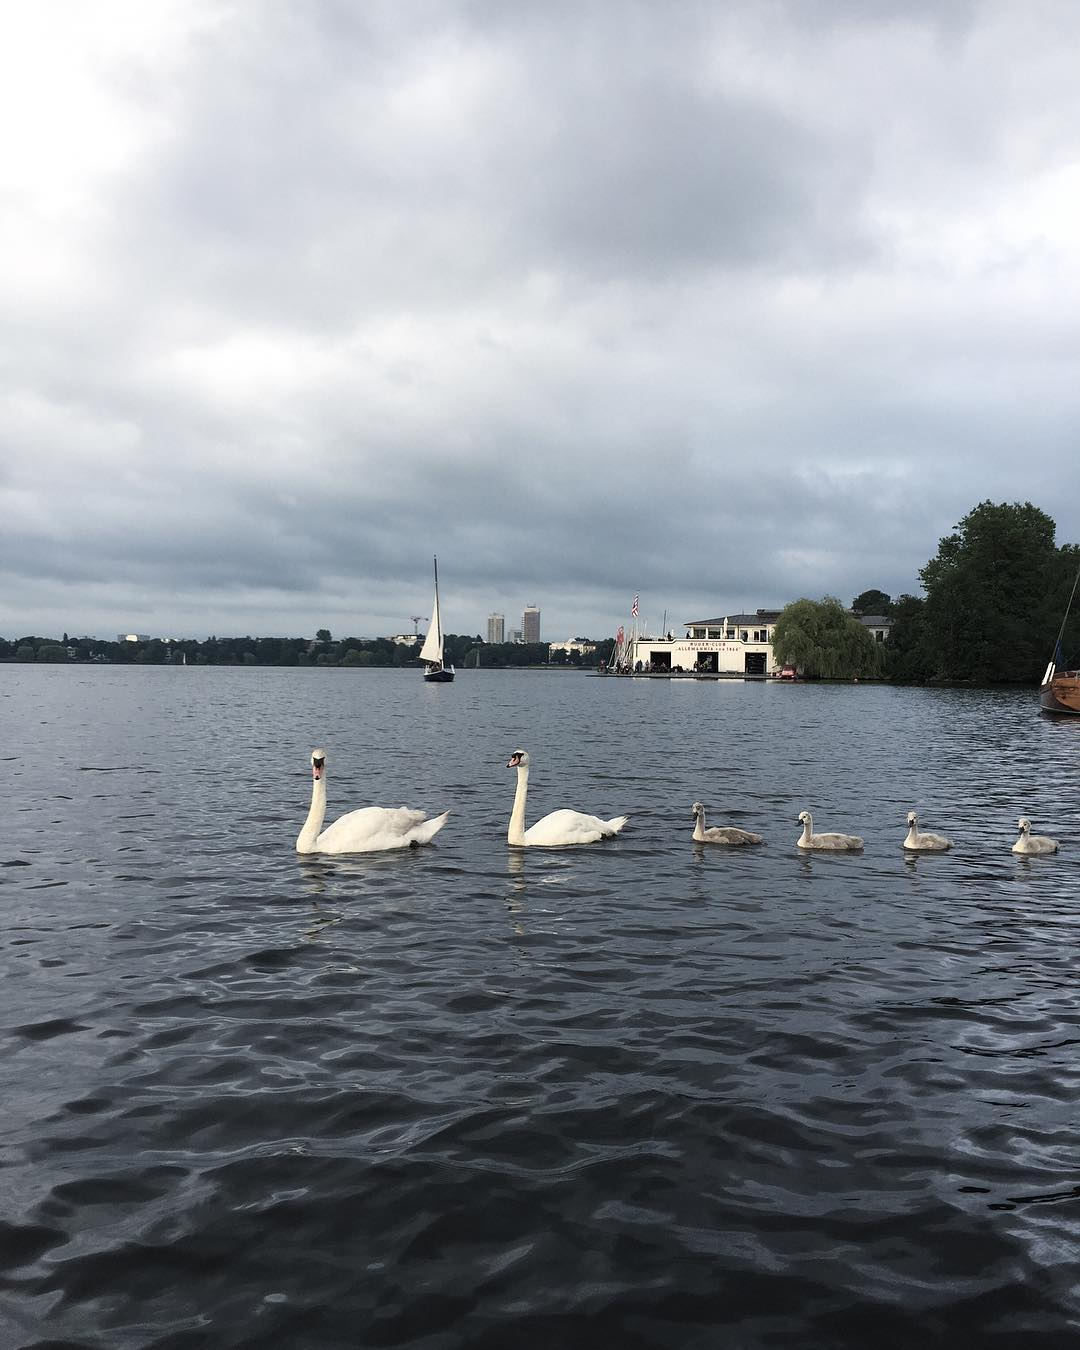 Still cloudy but we sailed with swans and the sunhellip